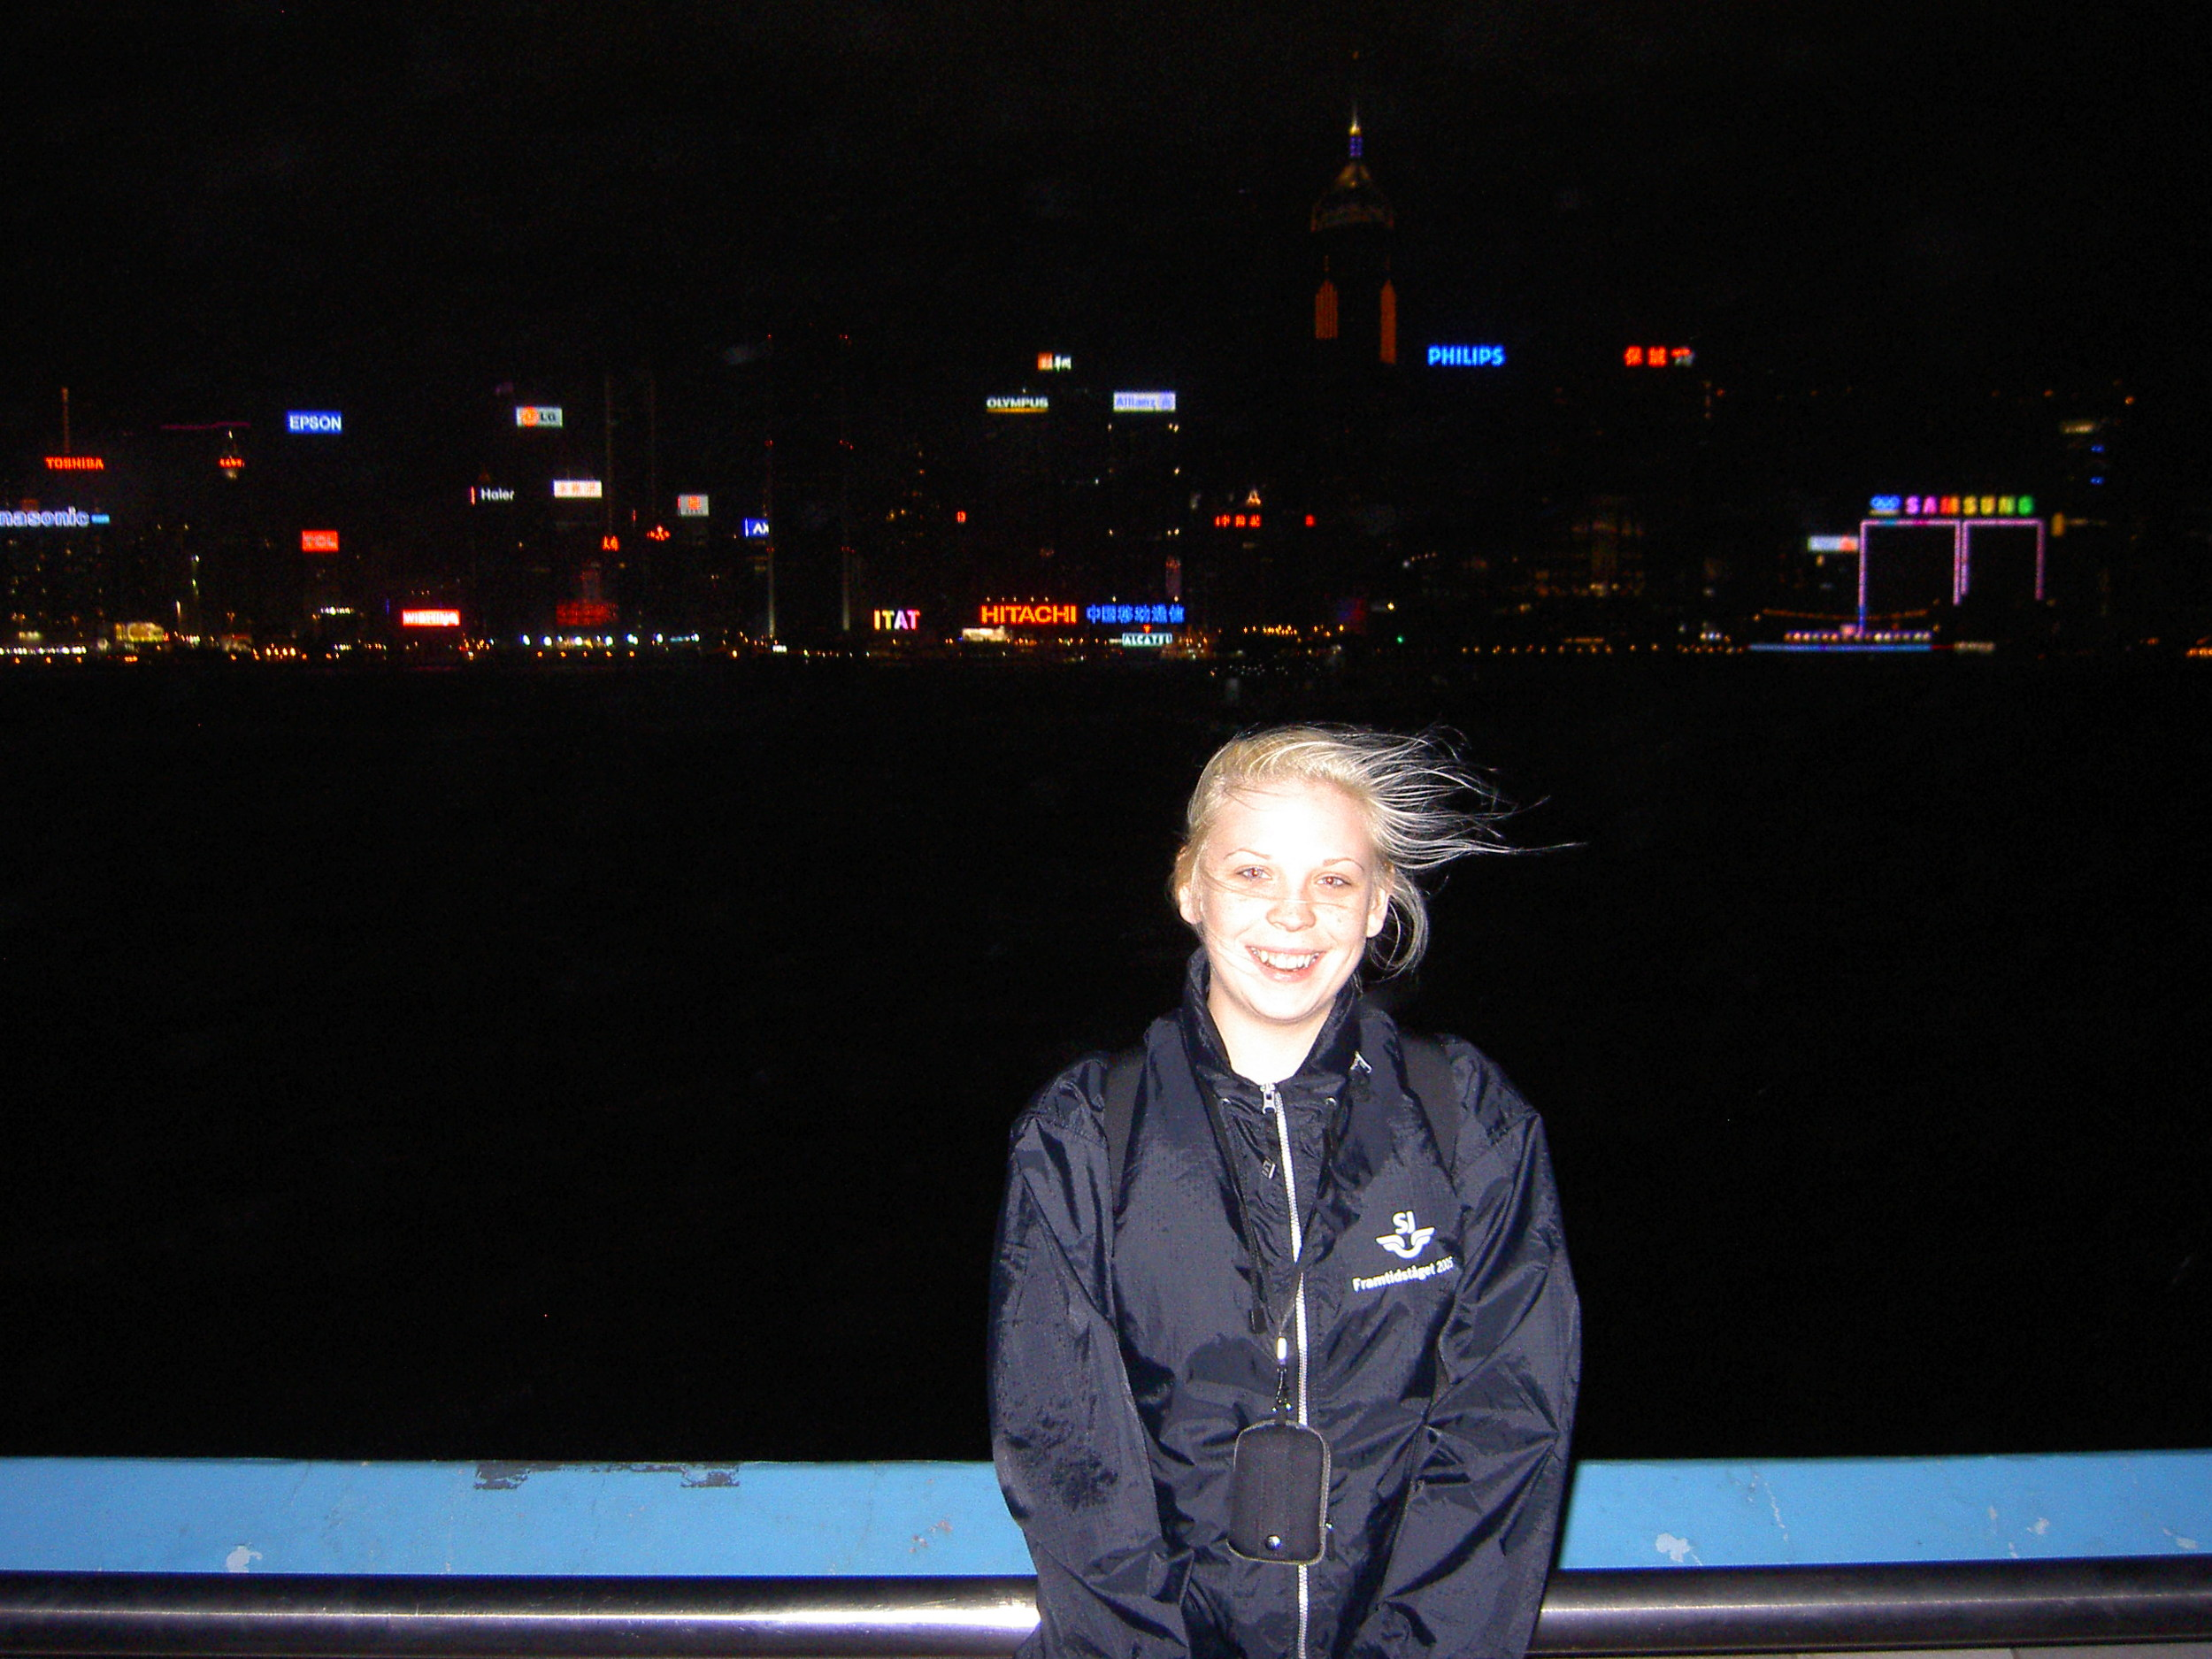 The Harbour by night. Pretty windy